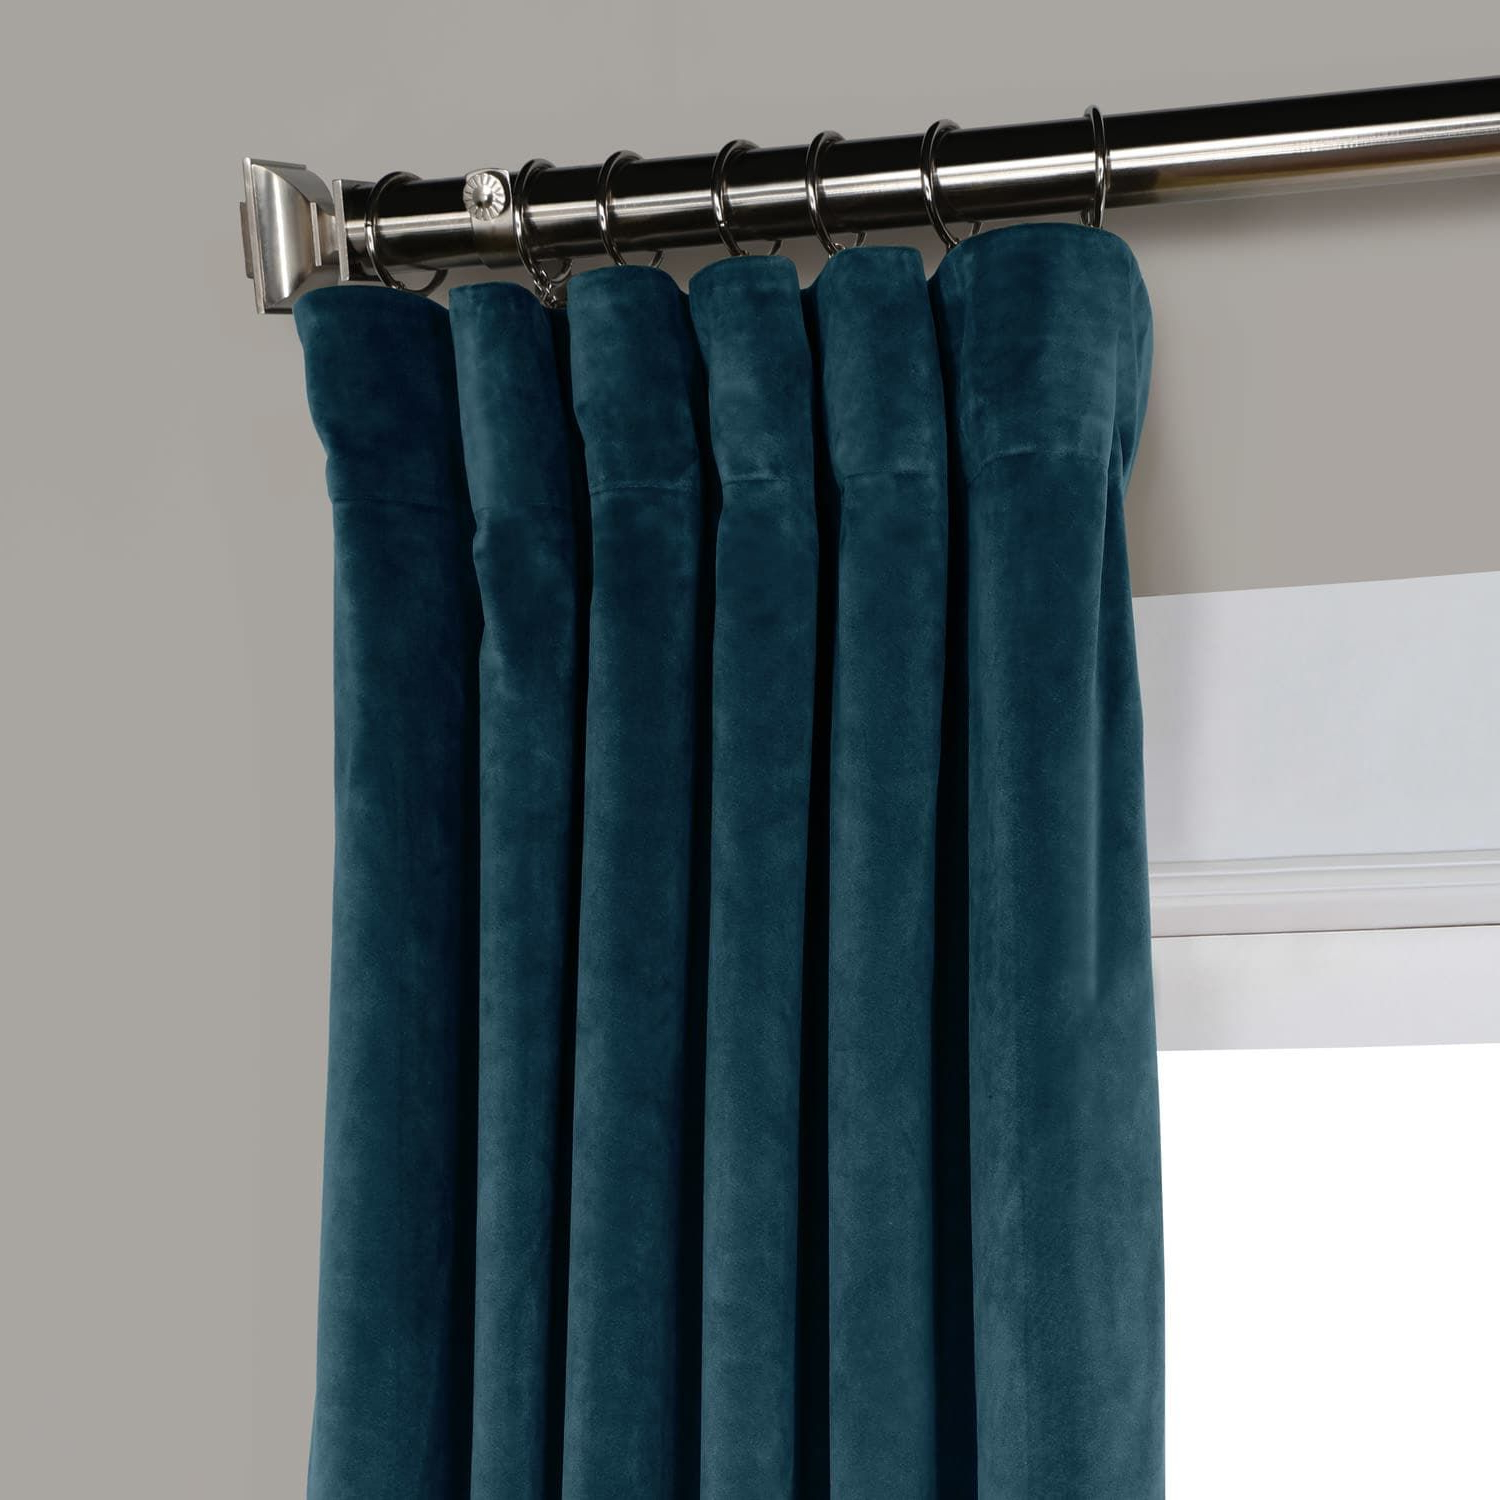 Patterns Throughout Current Heritage Plush Velvet Single Curtain Panels (View 17 of 20)